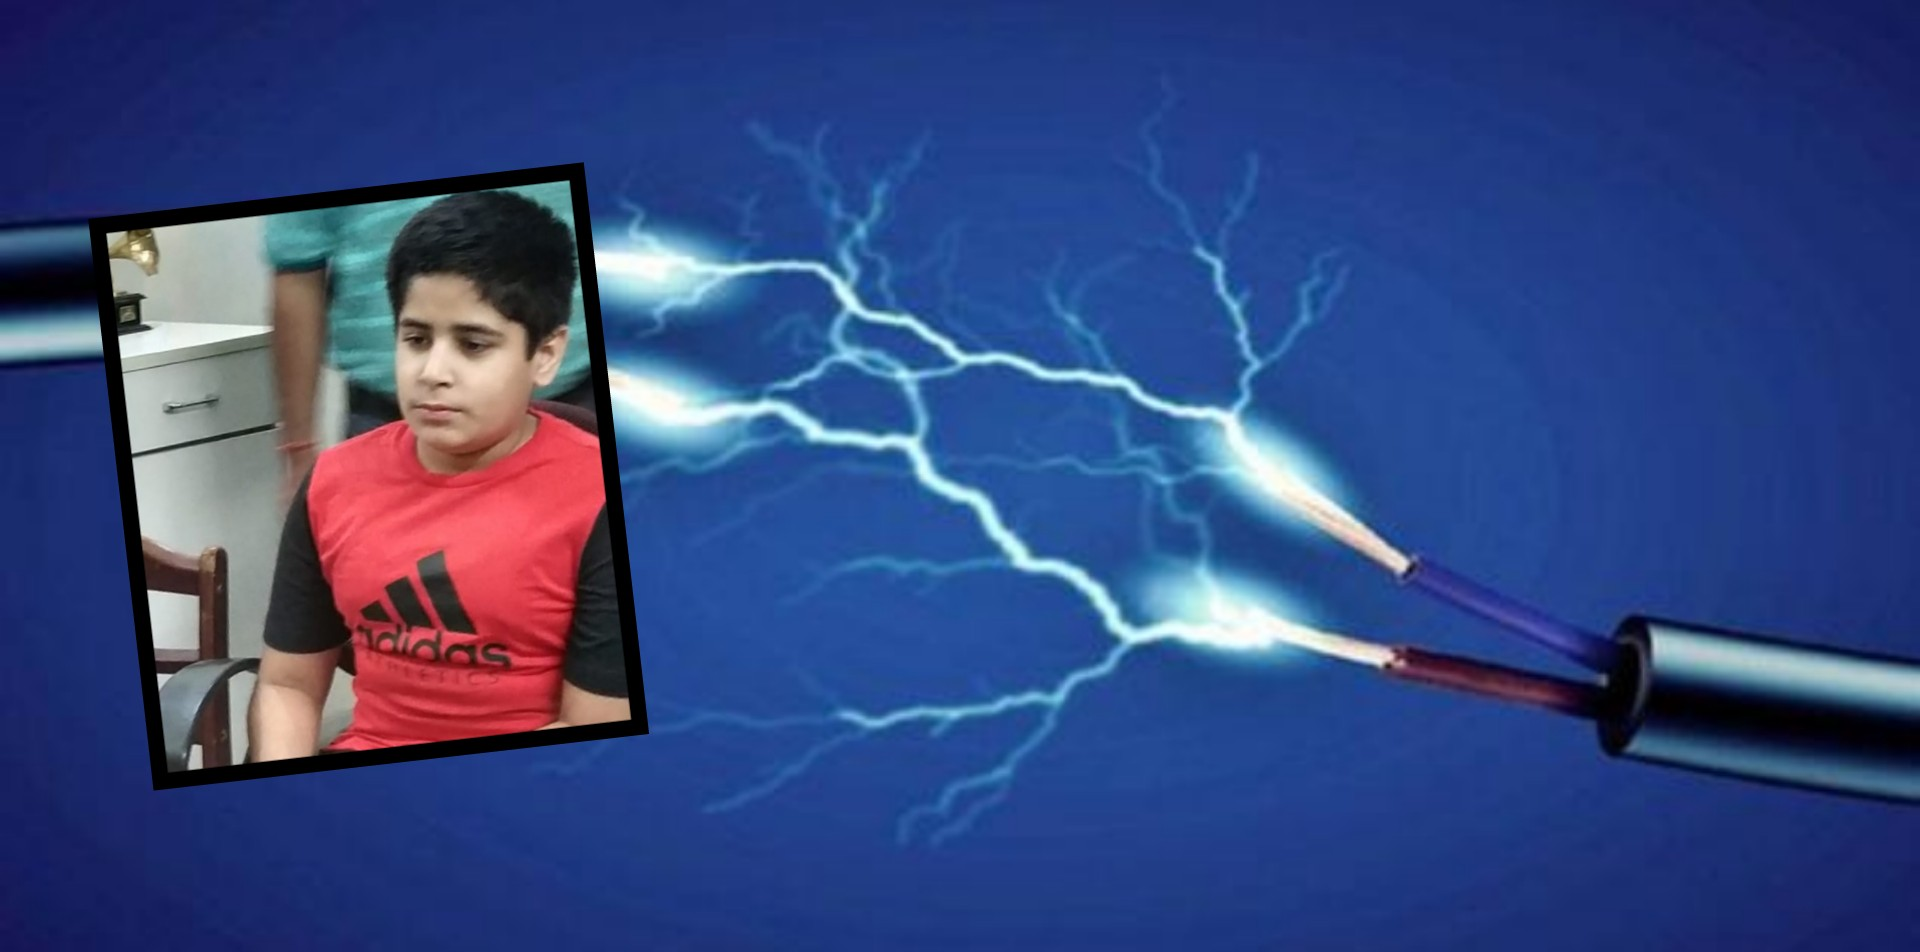 Breaking: 12-year-old boy electrocuted to death in Shipra Sun City park